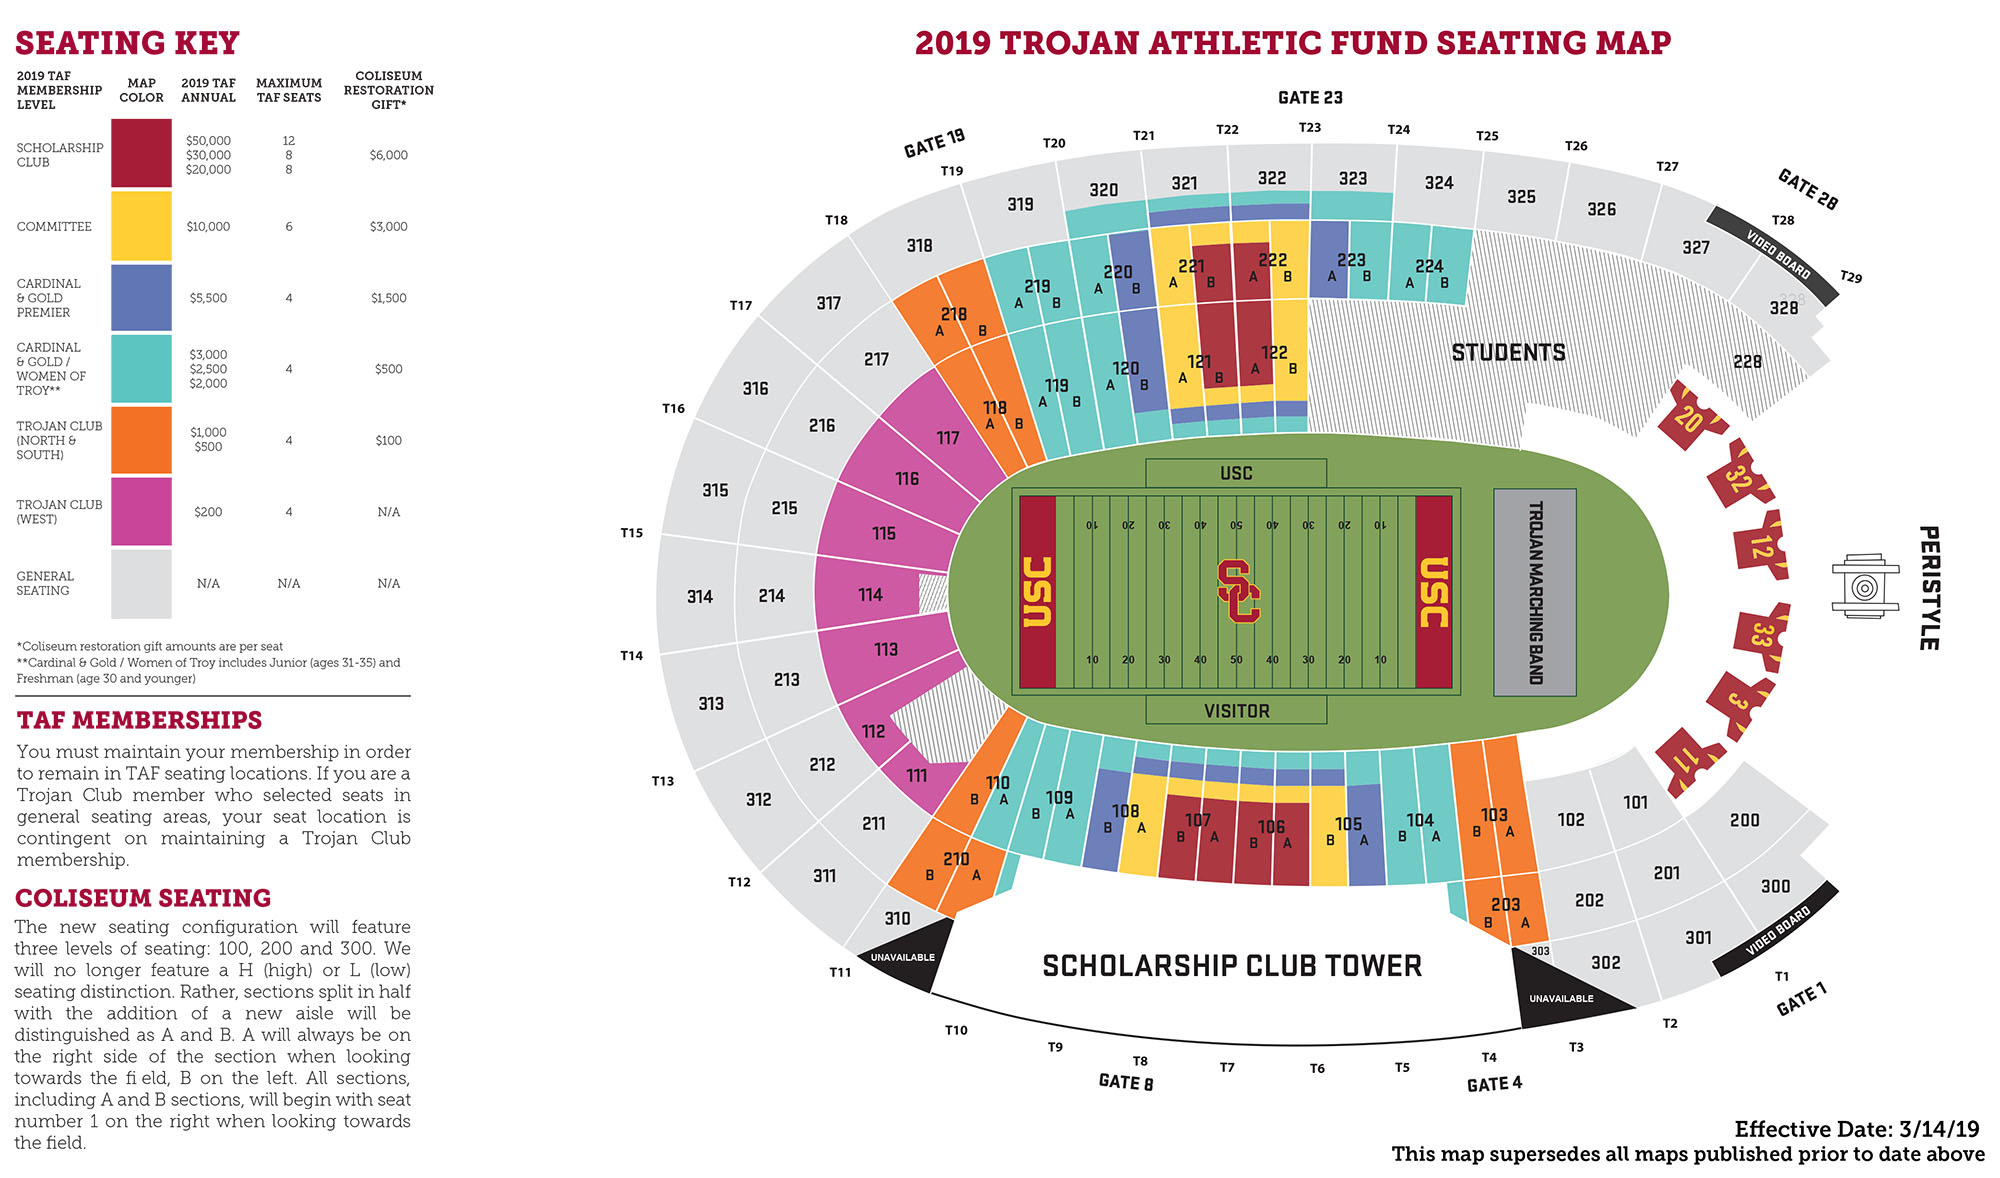 2019 Trojan Athletic Fund Seating Map for USC Trojans Football